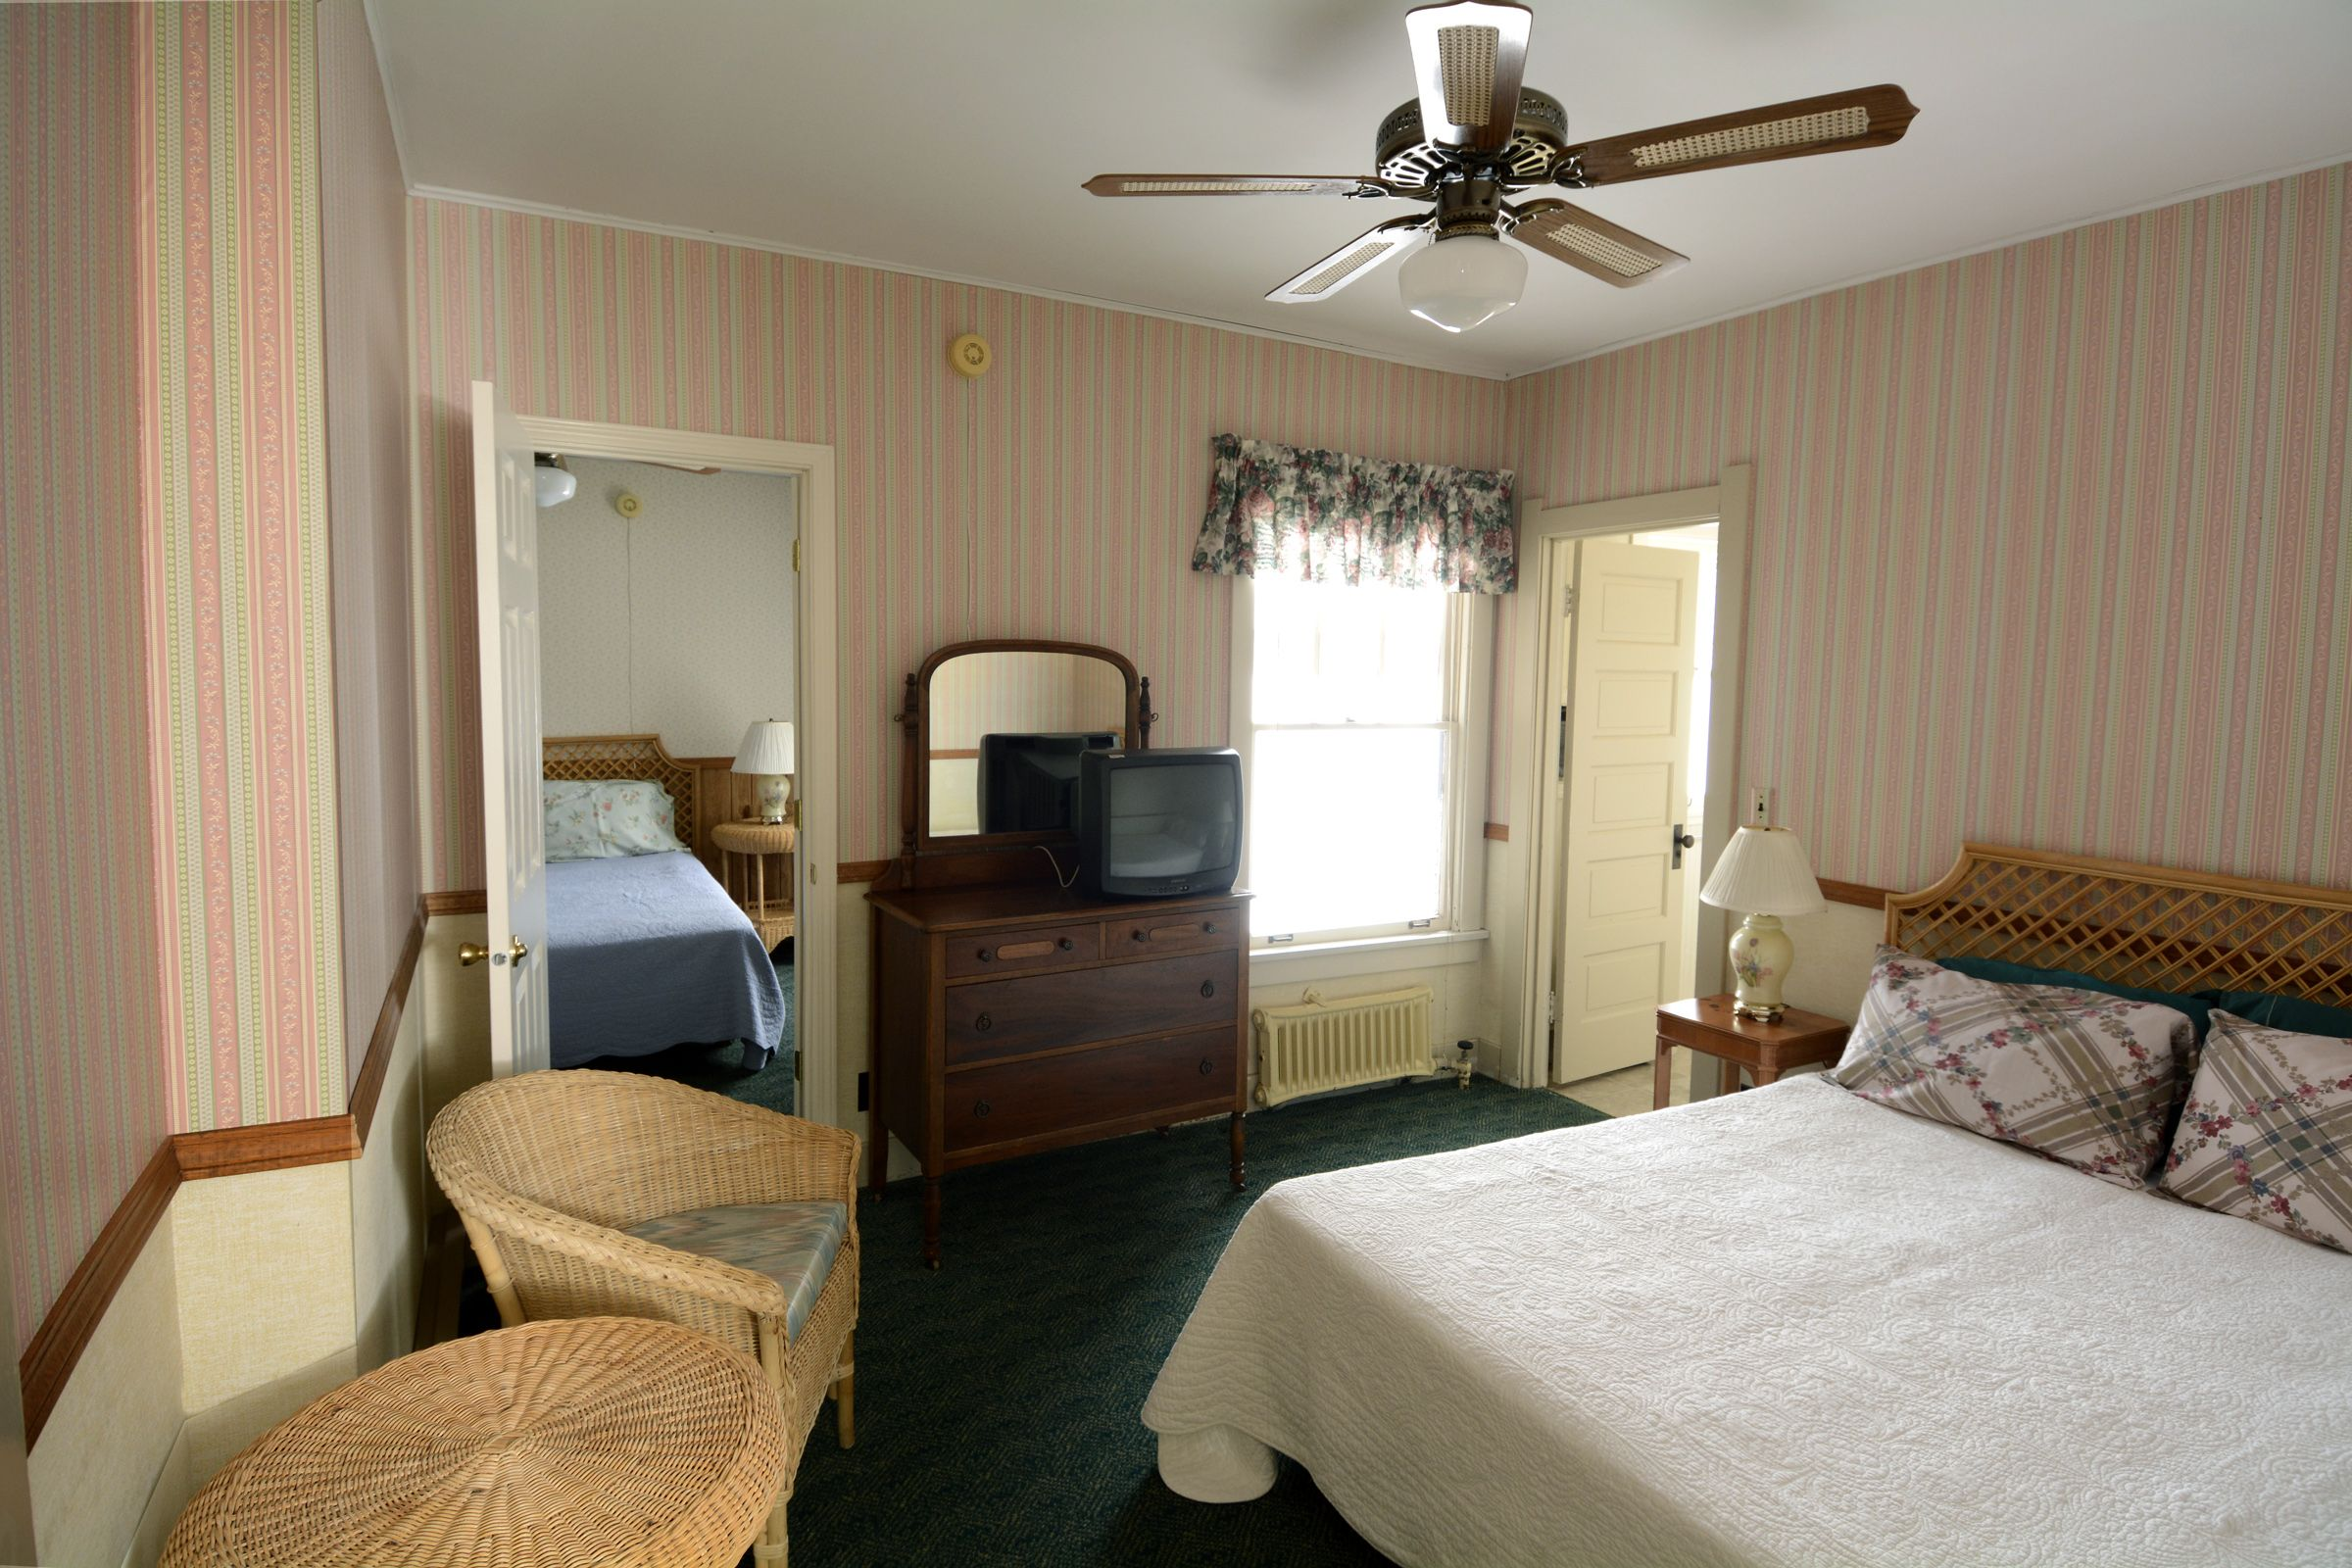 Adjoining rooms have one queen bed adjoining one queen bed